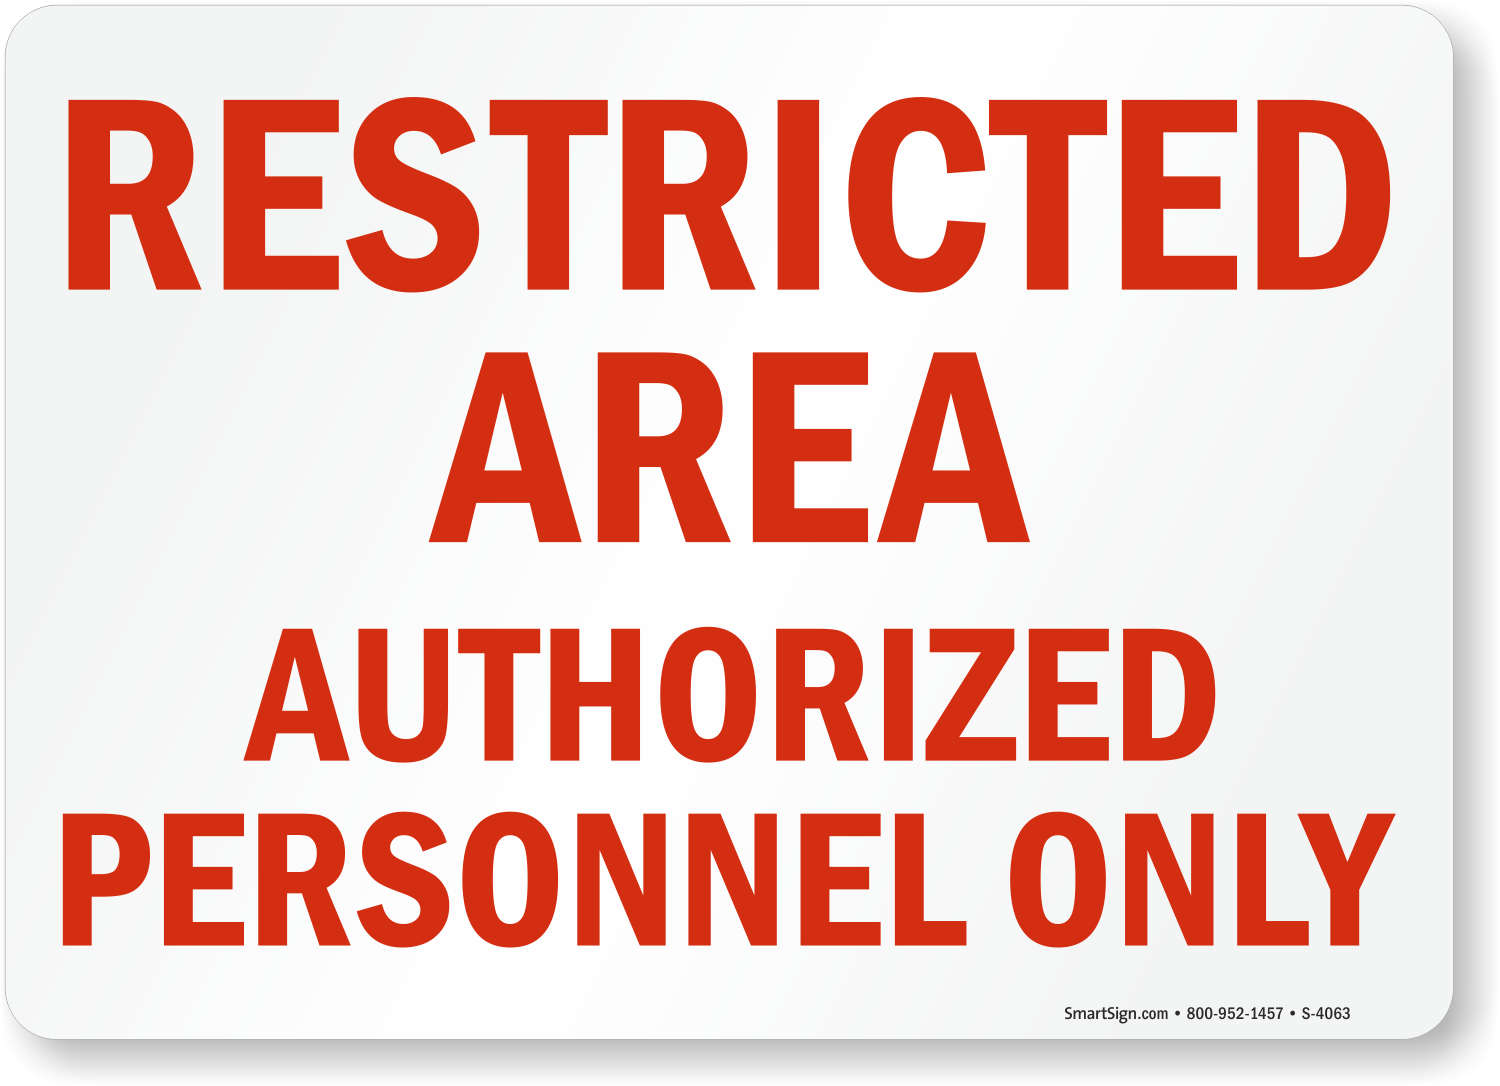 image relating to Authorized Personnel Only Sign Printable named Limited Local Approved Staff Just Indication with Crimson Terms